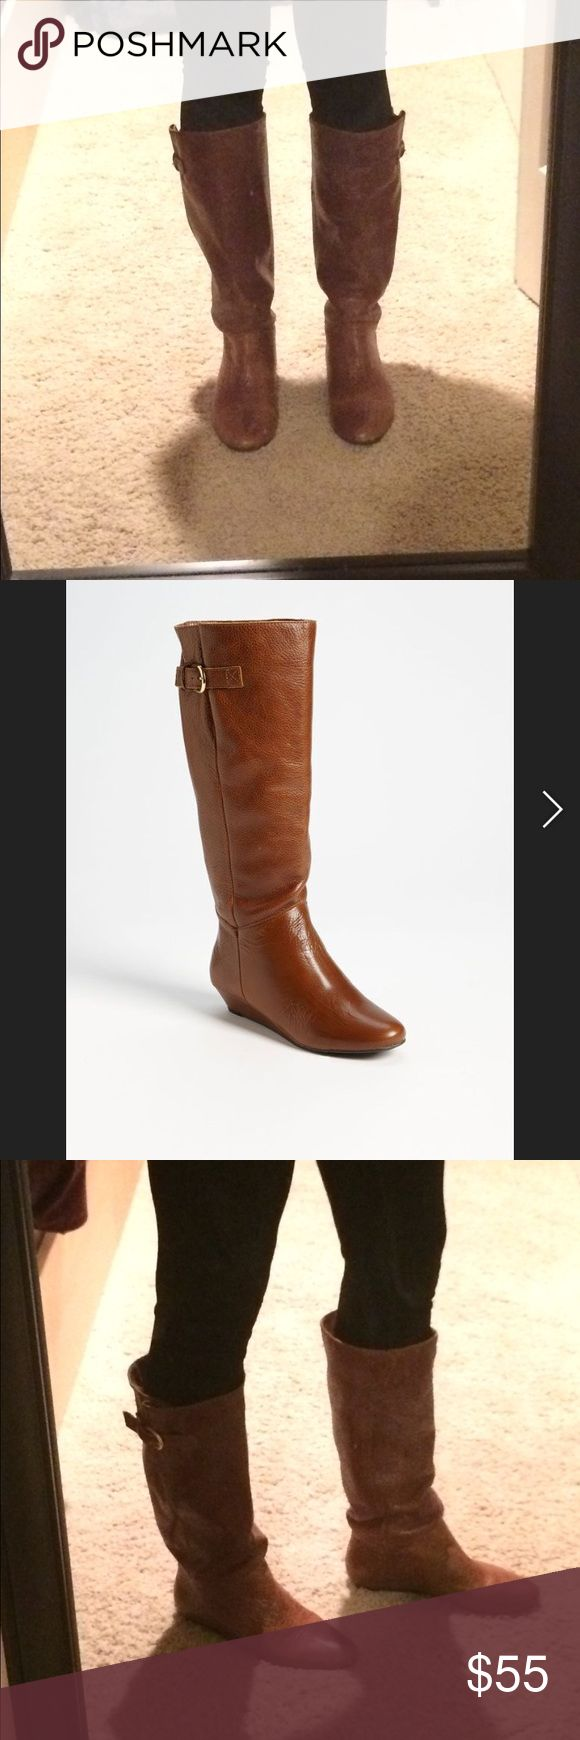 Size 7.5 Steve Madden INTYCE Brown Leather Boot Steve Madden INTYCE leather boots. Popular style riding boots in like new condition. High quality leather that lasts years (I've had a different pair going on 6). They have light wear on the back of one of the heels (pictured) but still in great condition. Low wedge heel is comfortable for all day wear. Let me know if you have questions and thanks for looking! Steve Madden Shoes